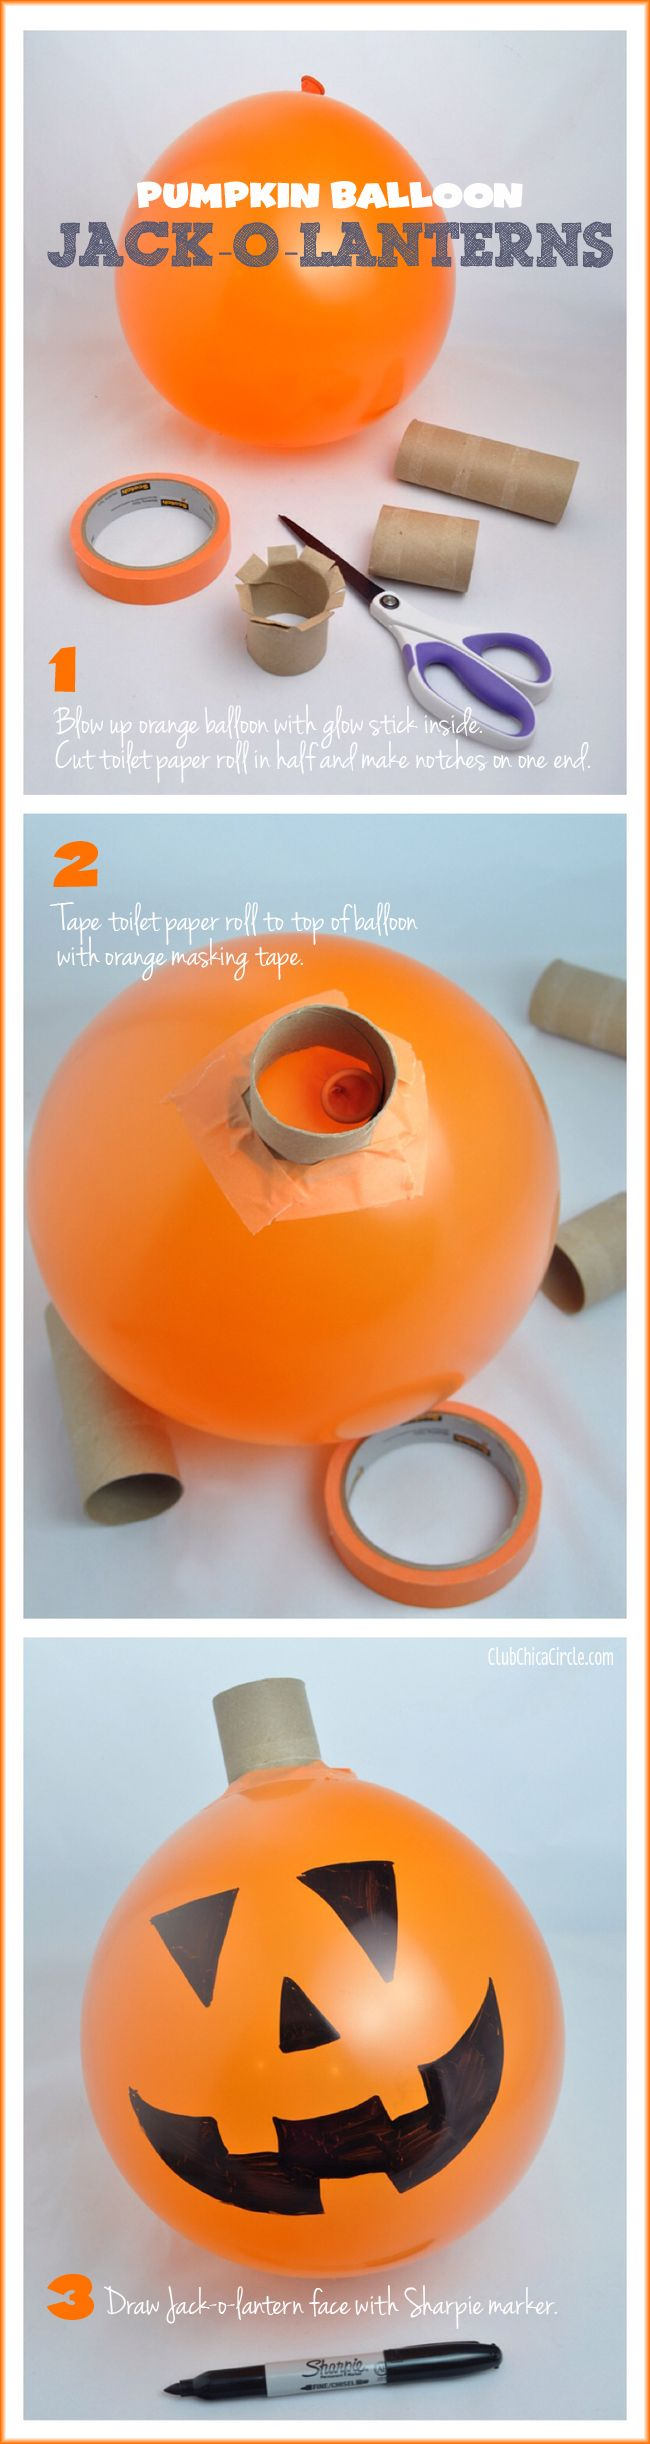 Pumpkin Balloon Halloween Party Craft Idea DIY - great last minute party or classroom activity for kids. All you need is toilet paper rolls, orange balloons, tape, and a Sharpie marker! #CottonelleTarget #PMedia #ad